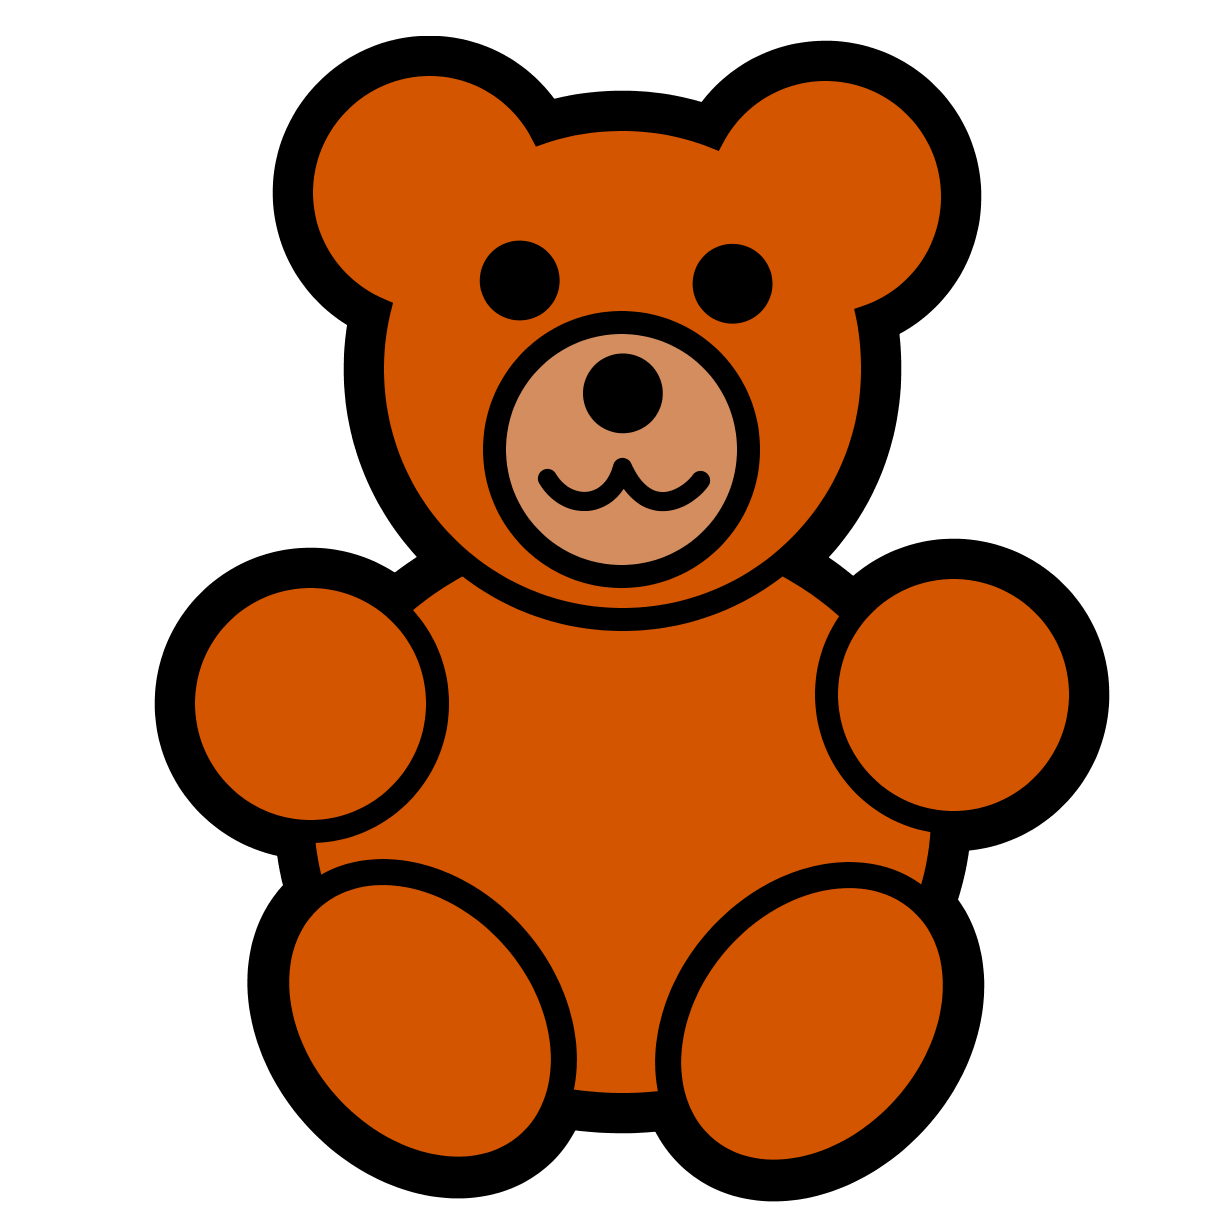 Teddy bear clipart free images 3